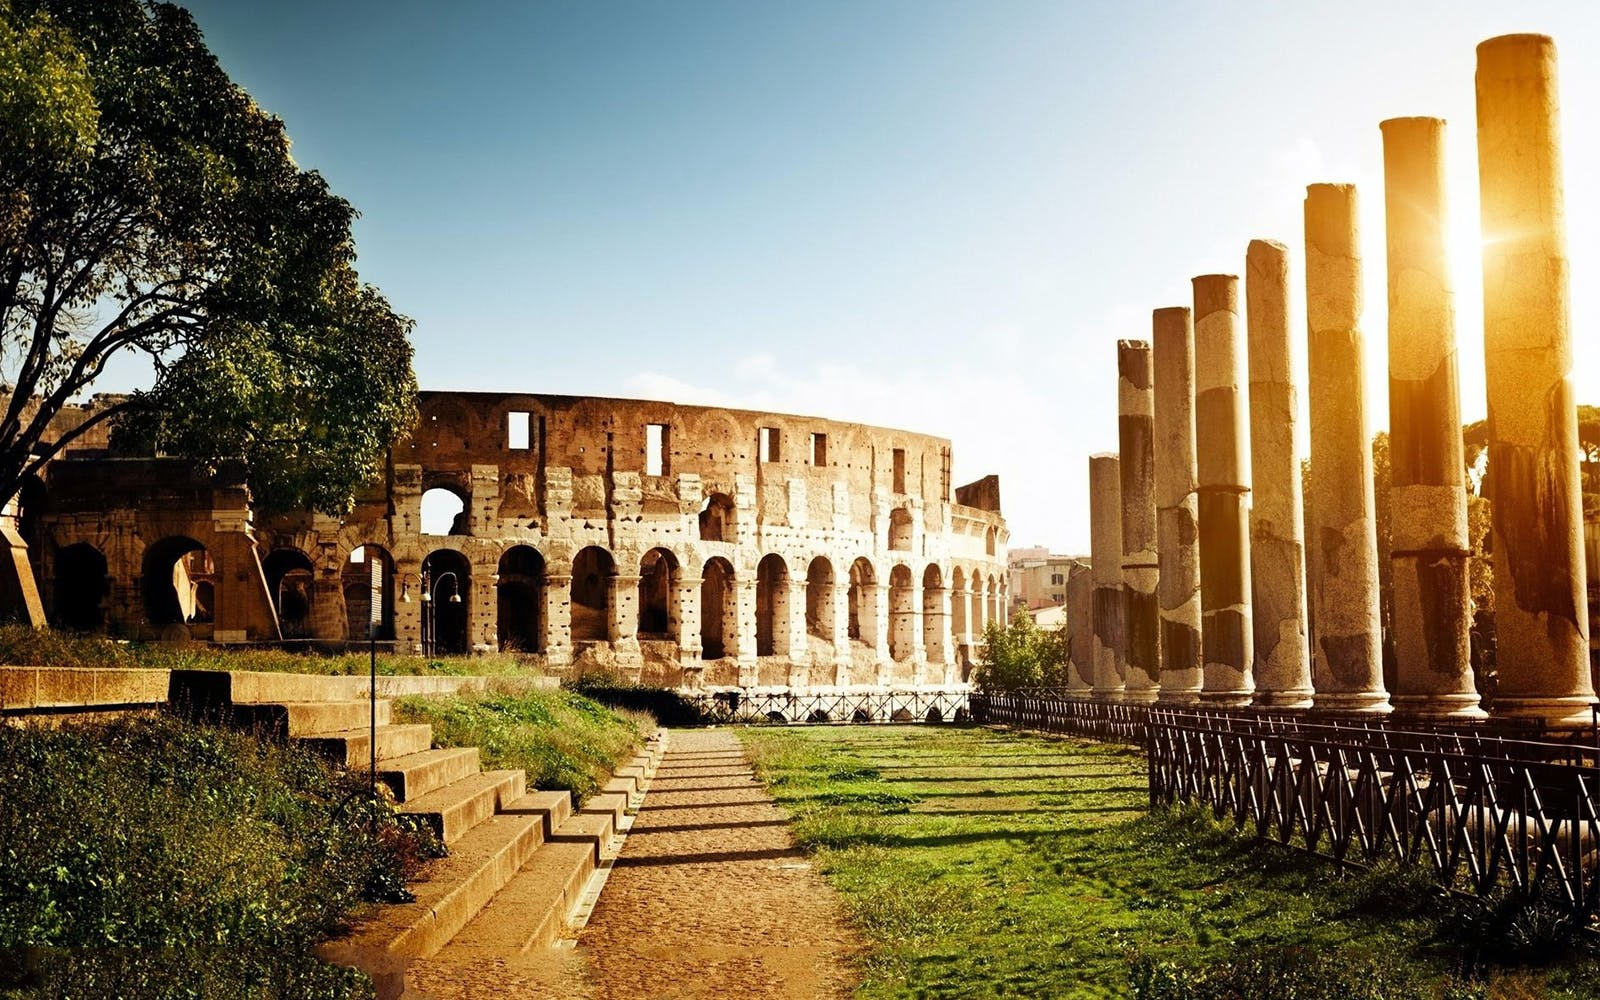 Priority Access: 3.5-Hour Guided Tour of Colosseum & Ancient Rome